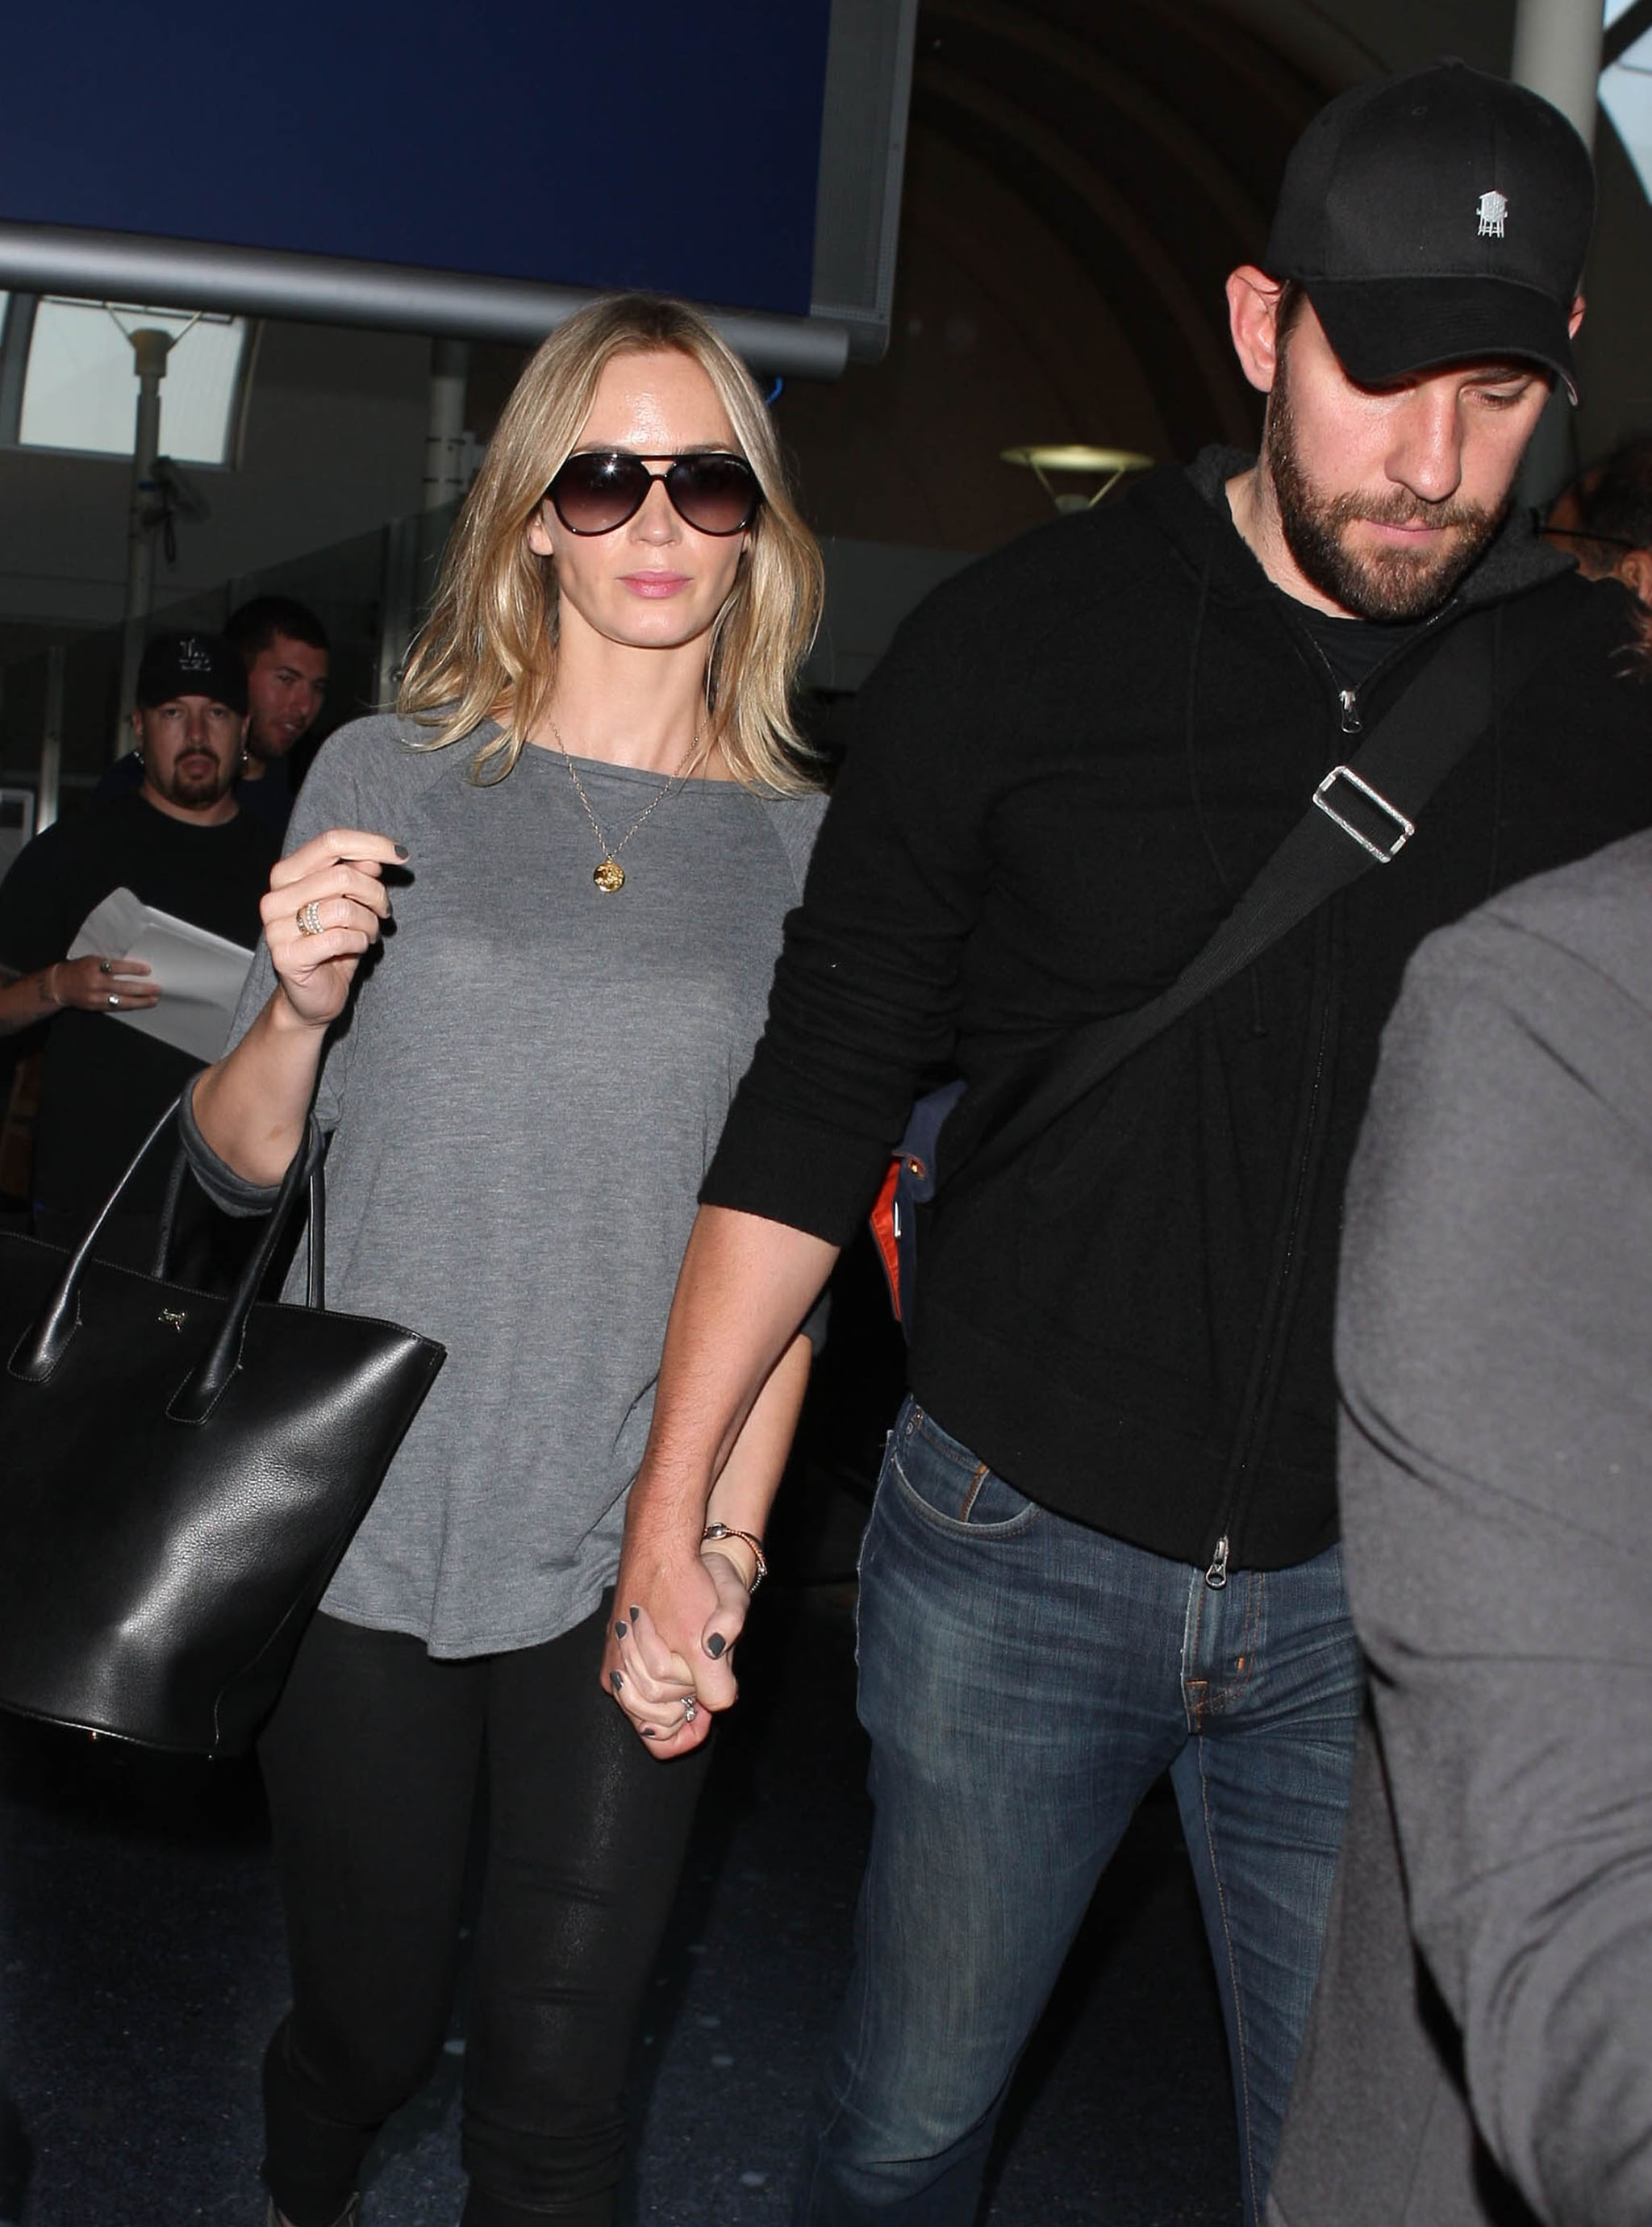 John Krasinski and Emily Blunt arrived at LAX holding hands.